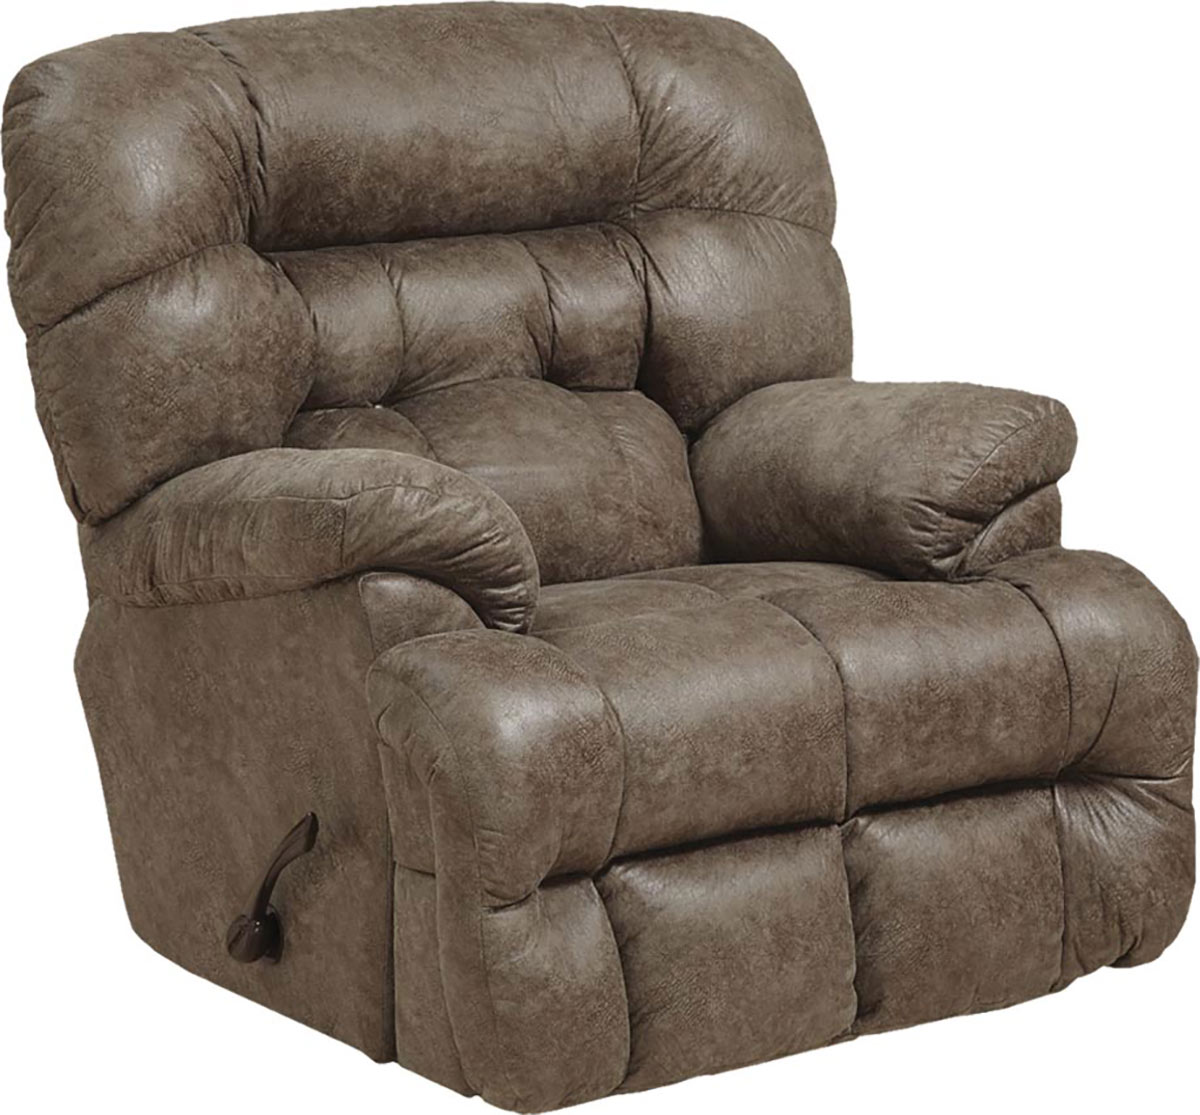 CatNapper Colson Chaise Rocker Recliner Chair - Marble